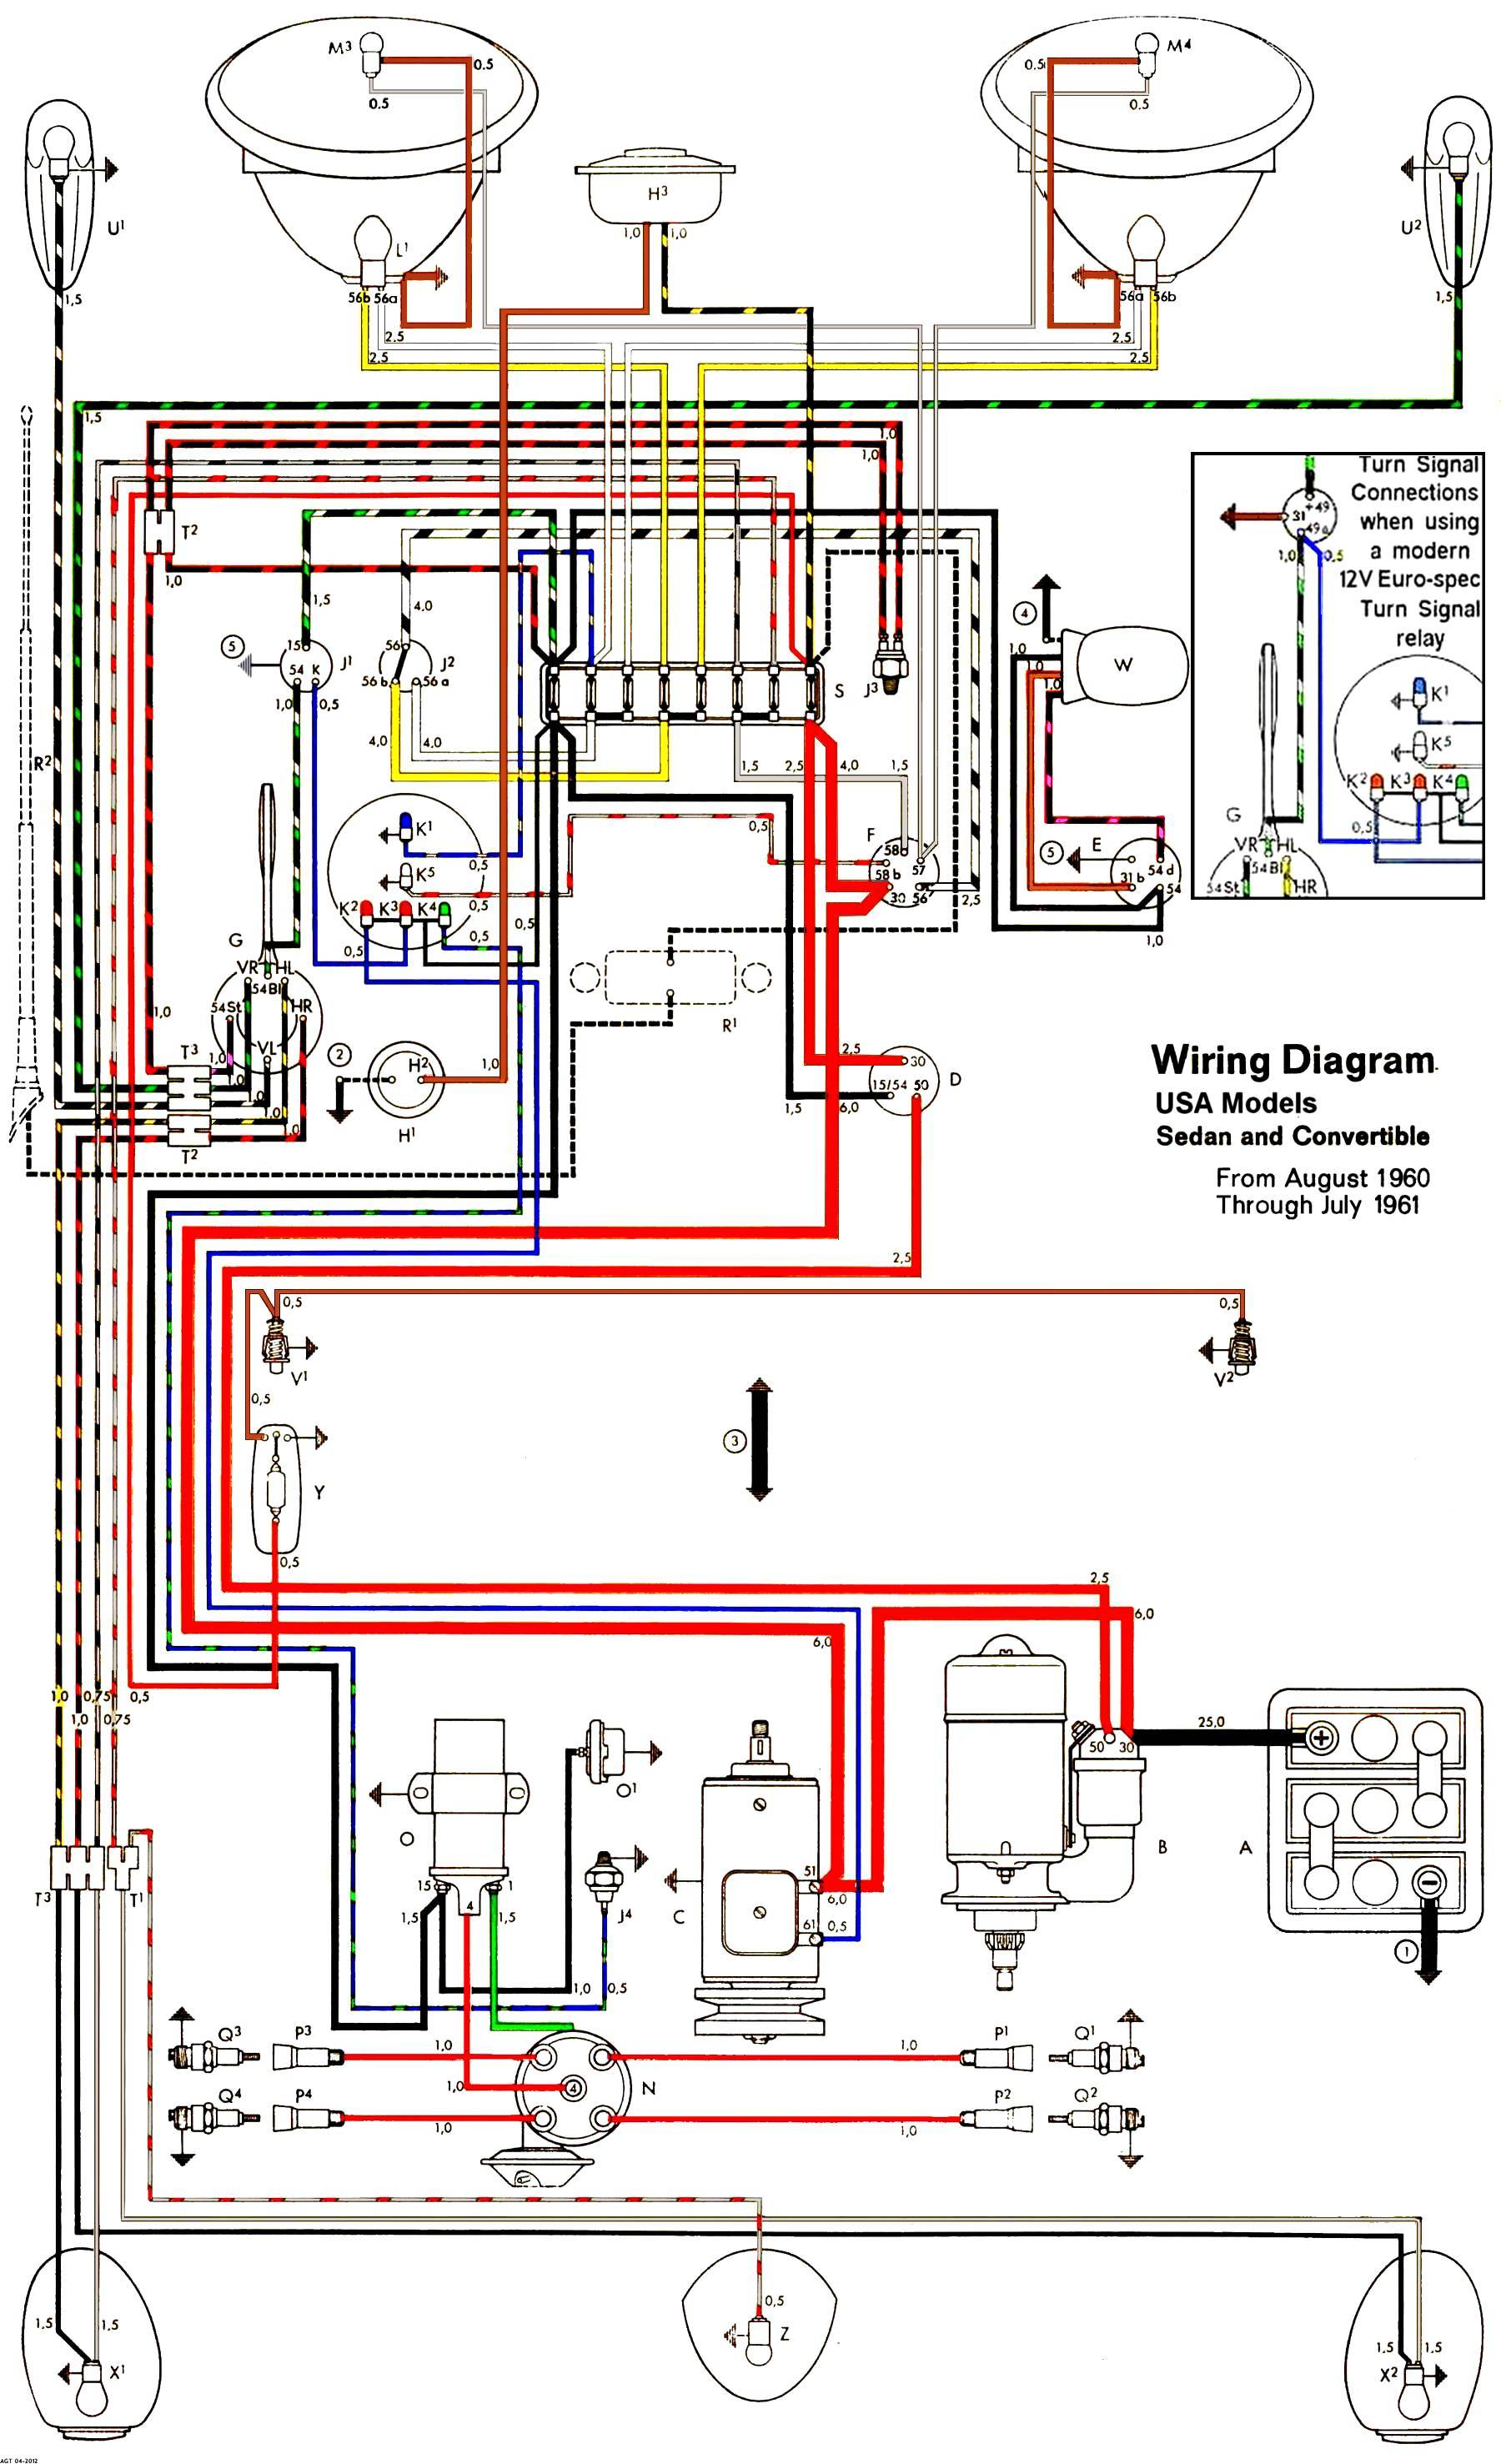 1958 ford car wiring diagram 53 ford car wiring diagram thesamba com type 1 wiring diagrams